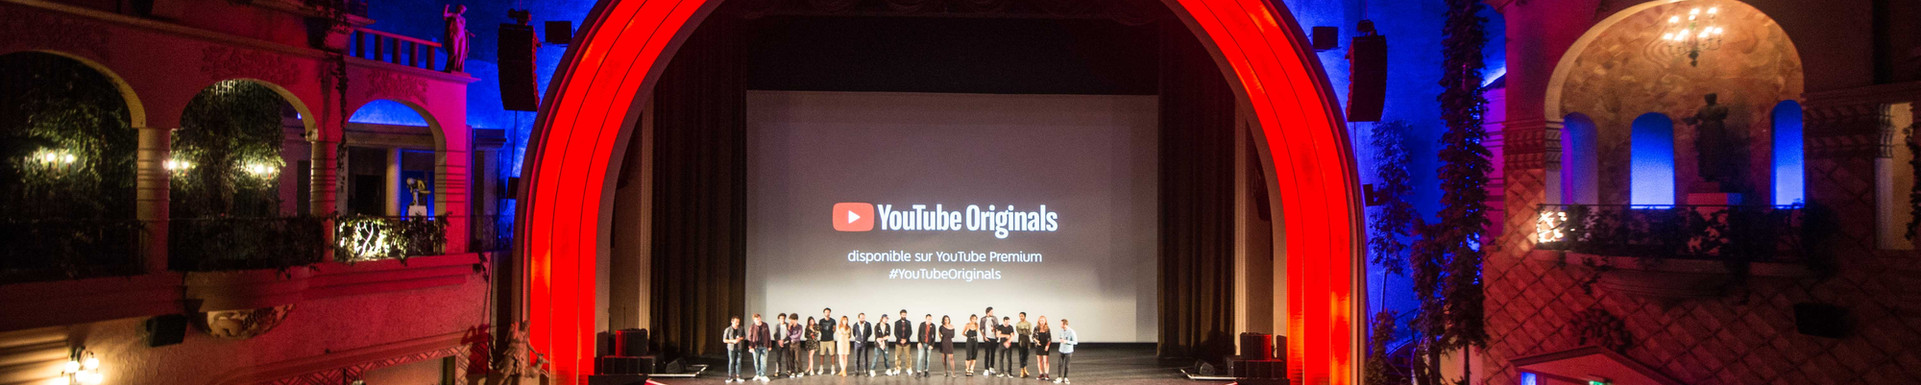 YouTube Originals by Auditoire 2018 - St